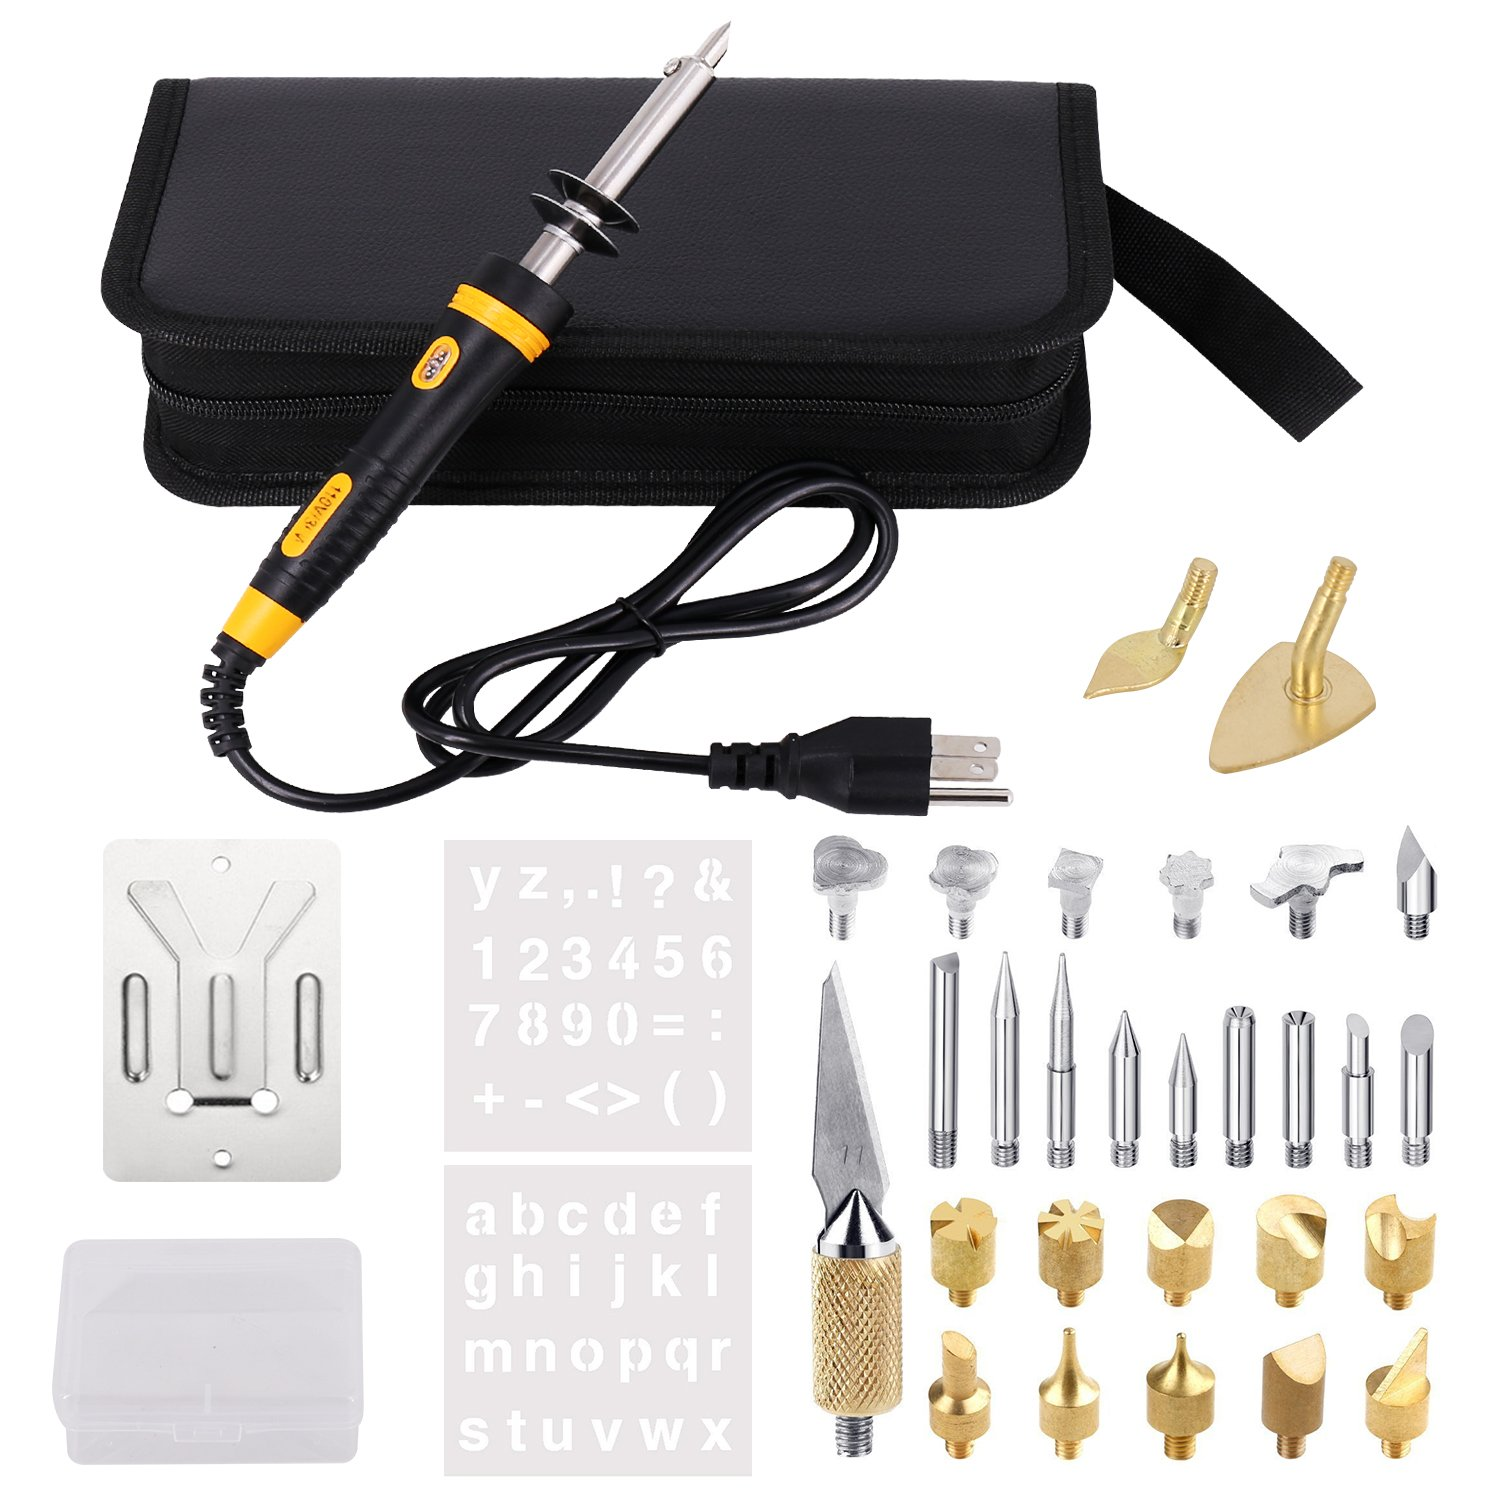 Full Set Wood Burning Kit, Pyrography Pen with LED Indicator light + Various Wood Embossing/Carving/Soldering Tips +Stencil + Stand + Carrying Case (X) by ATHOMEY